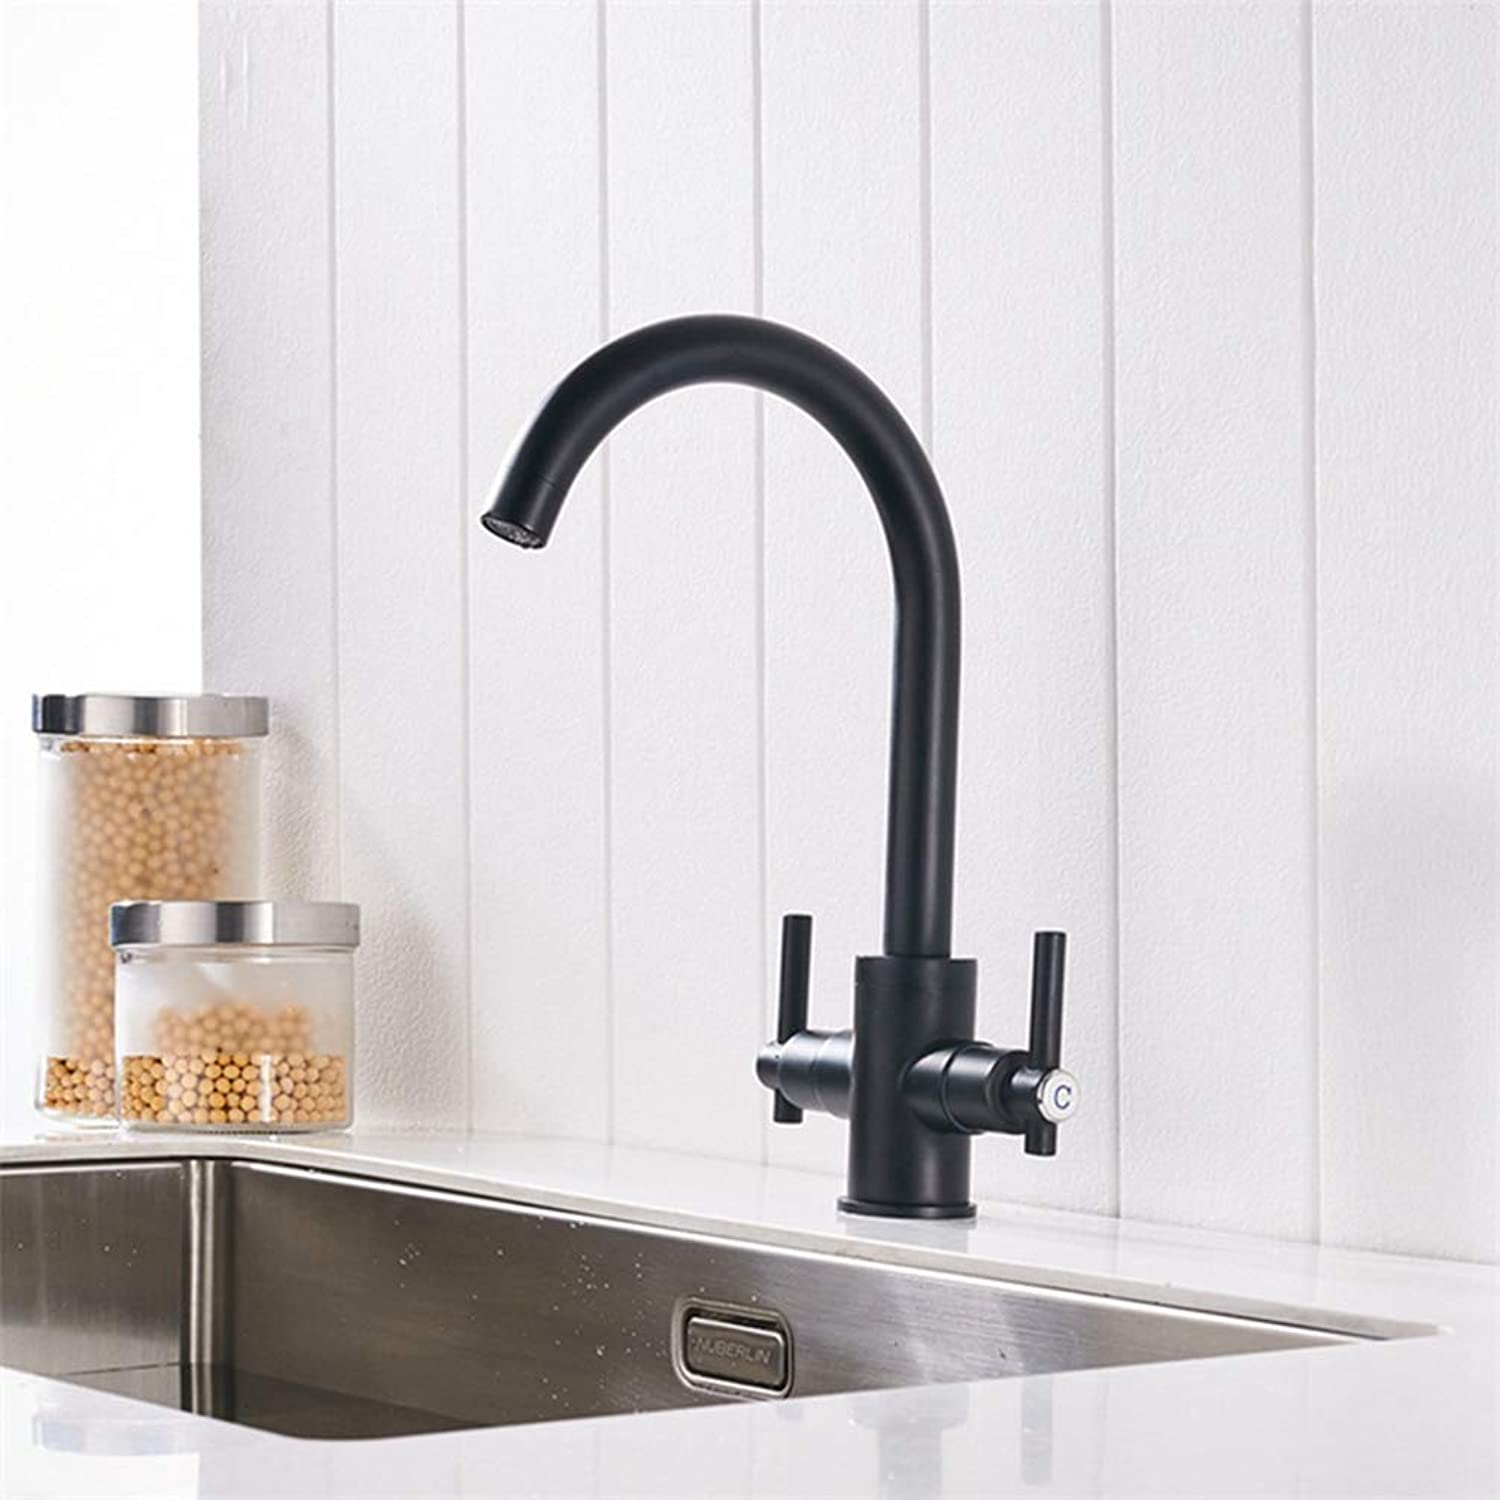 FZHLR Black Chrome Brushed Nickel color Kitchen Faucets Double Hands Round Bathroom Sinks Wall-in Taps Double Hole Mix Water Tap,Black